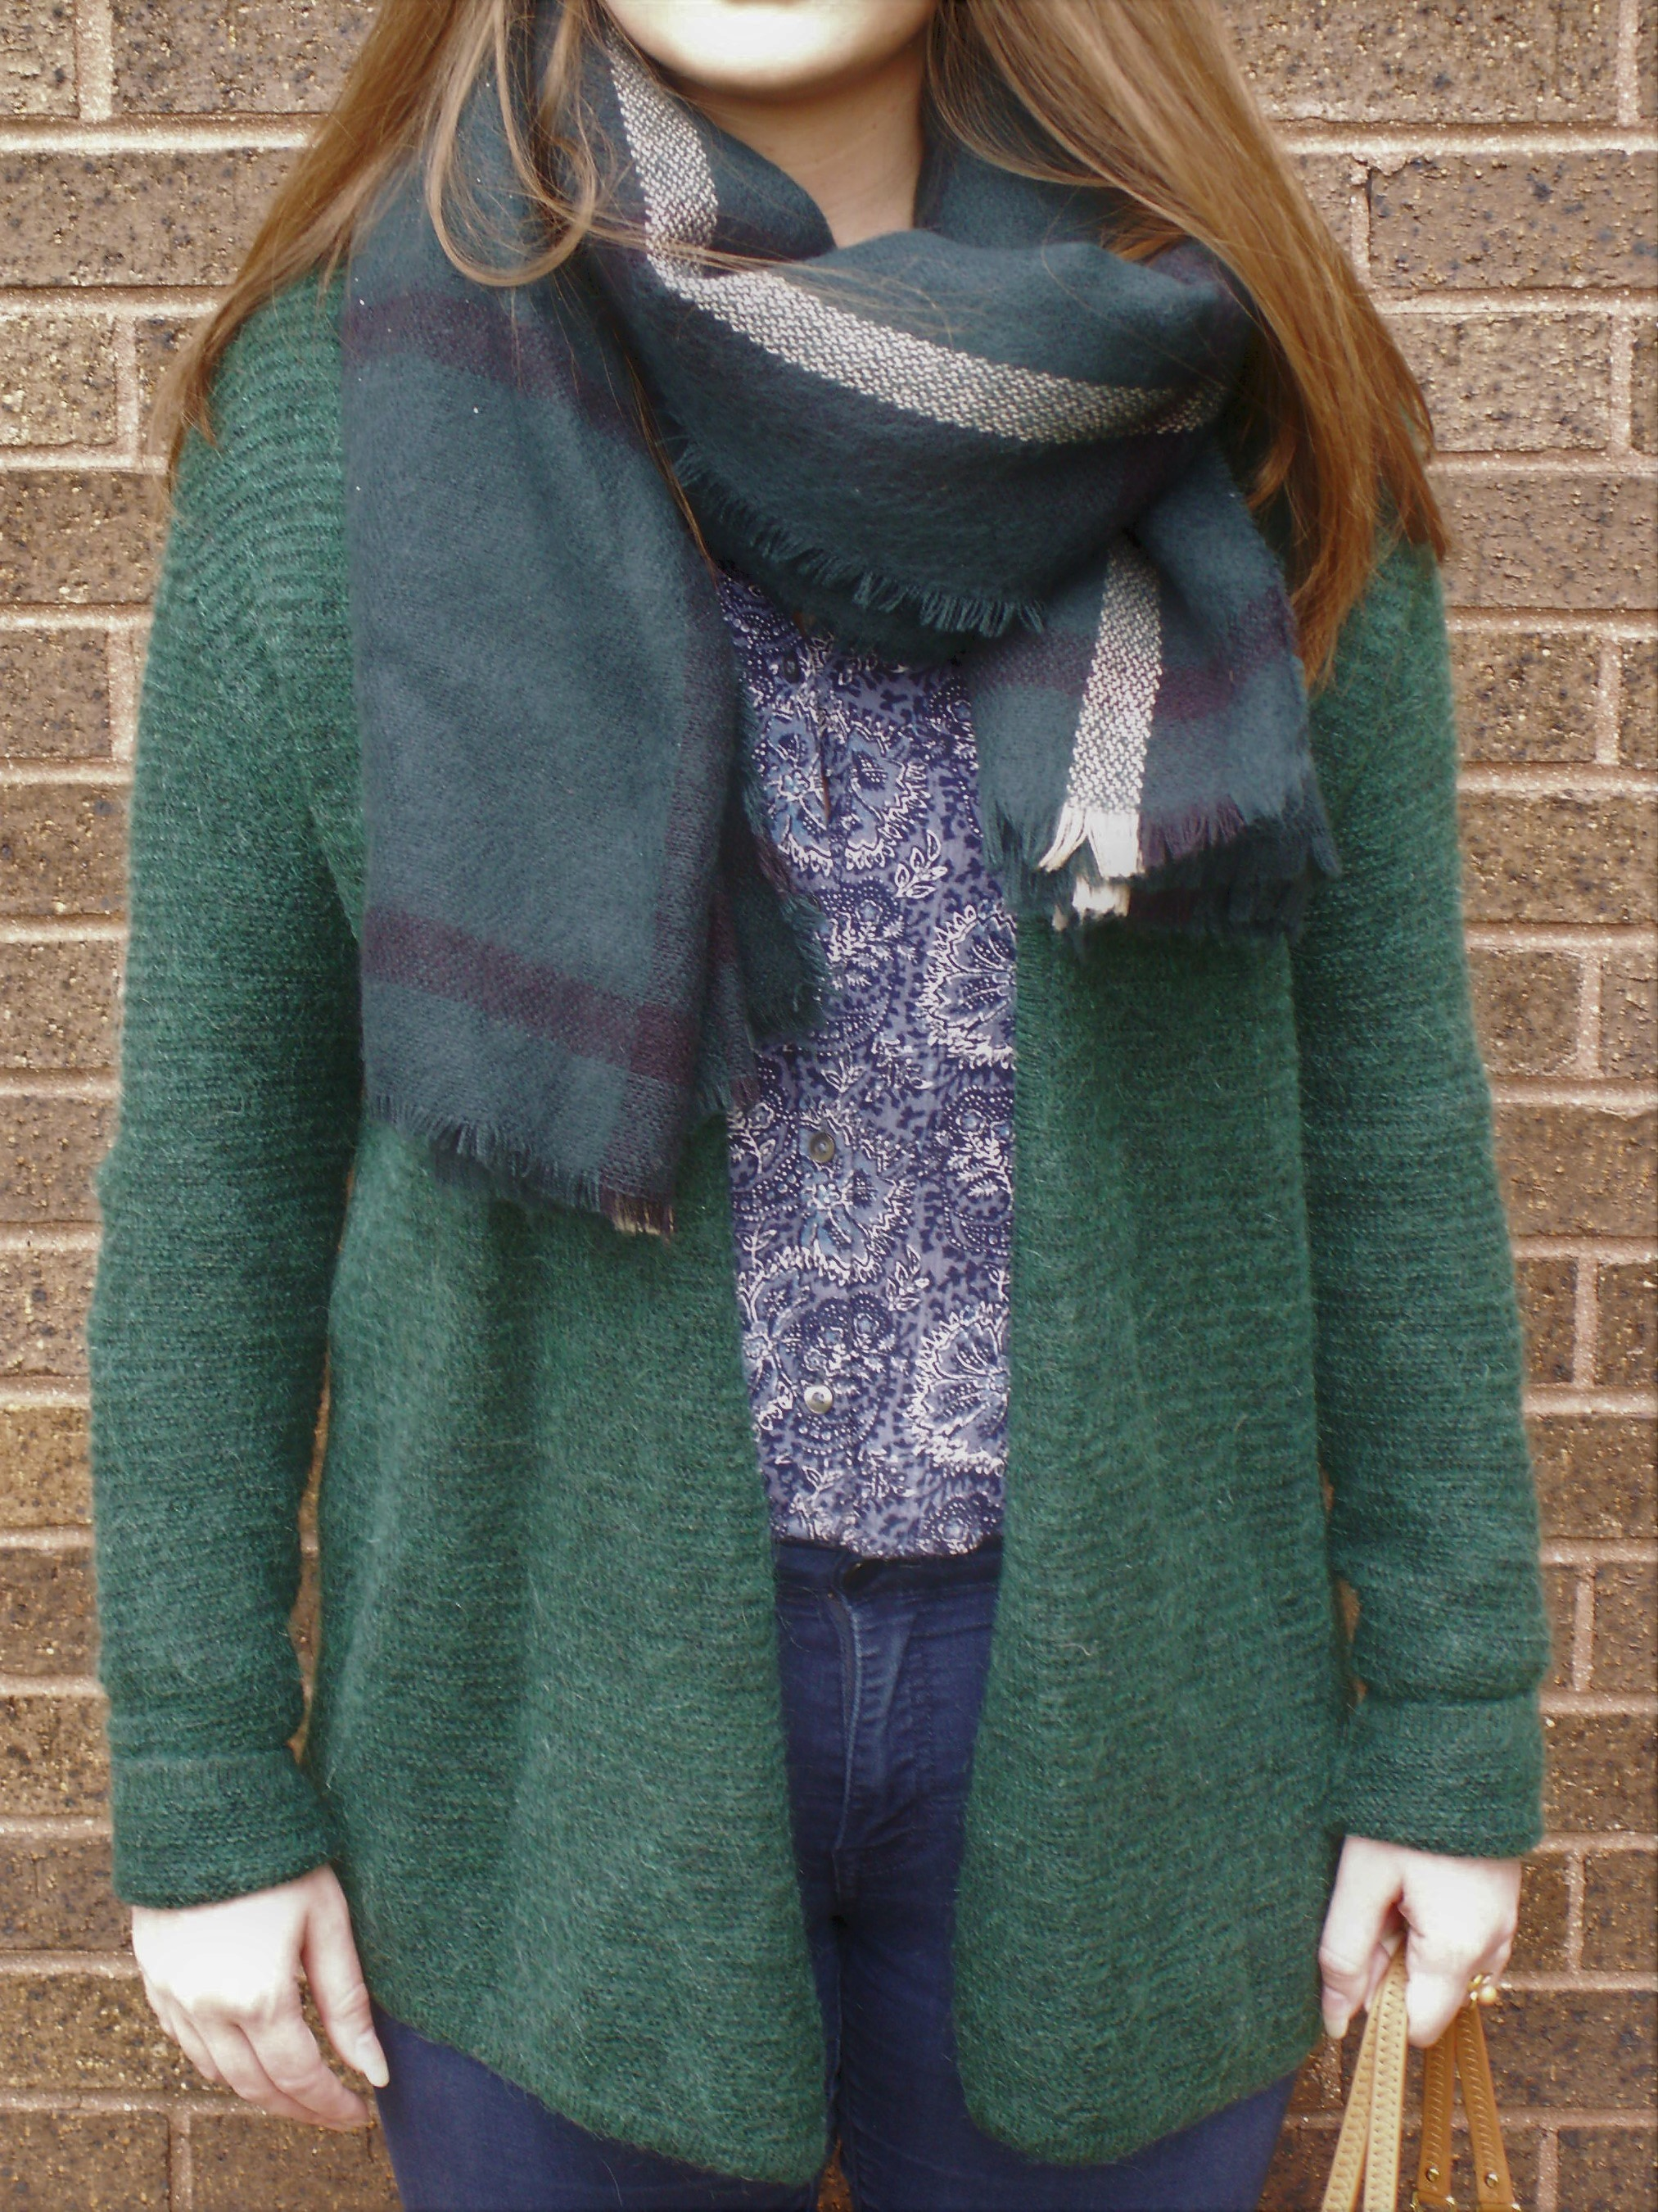 Model is wearing an emerald green cardigan over a sapphire blue paisley shirt with a matching plaid scarf.